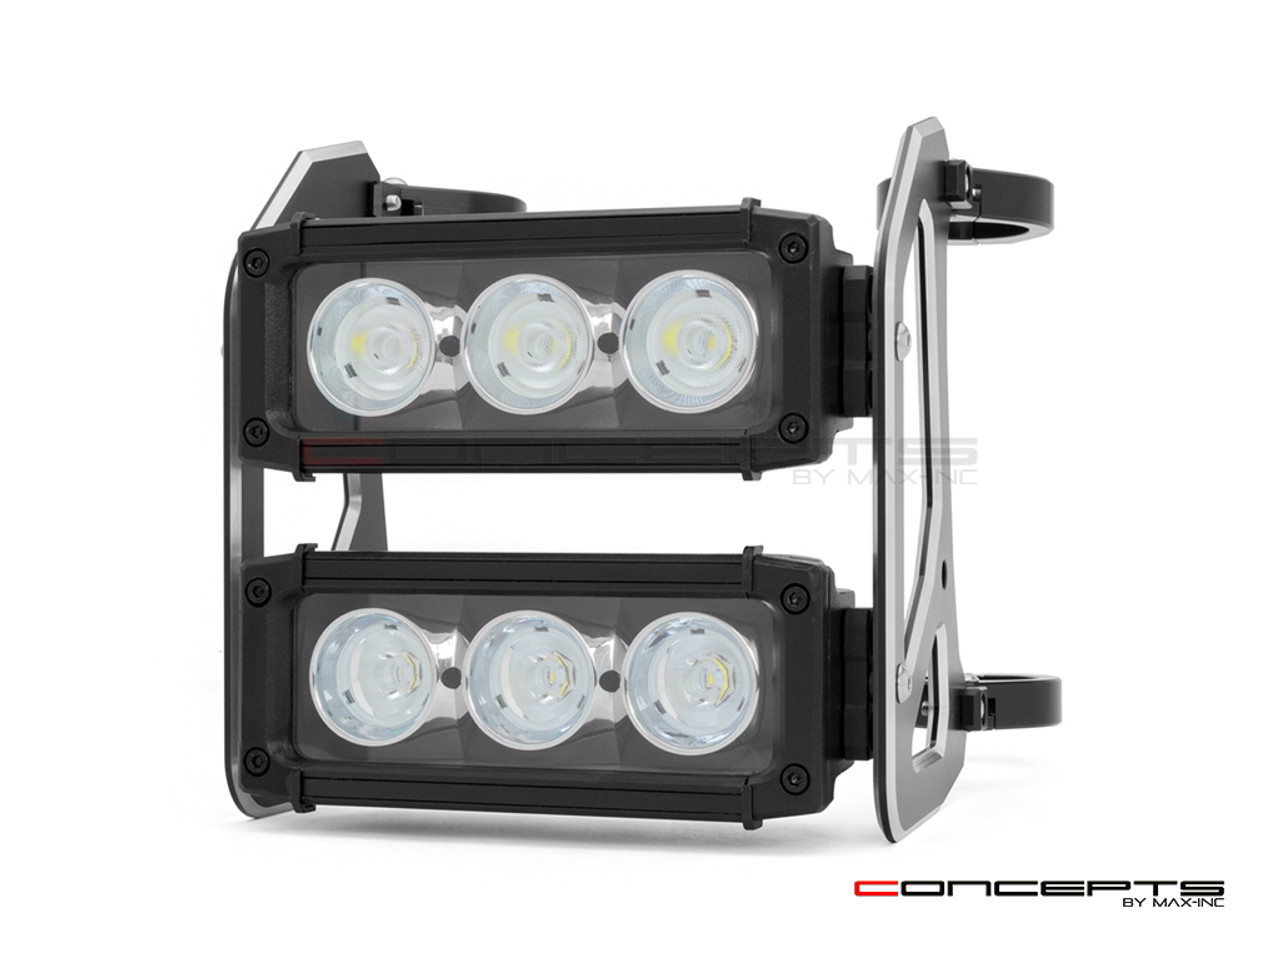 Daymaker Dual Stacked LED Light Bar Headlight